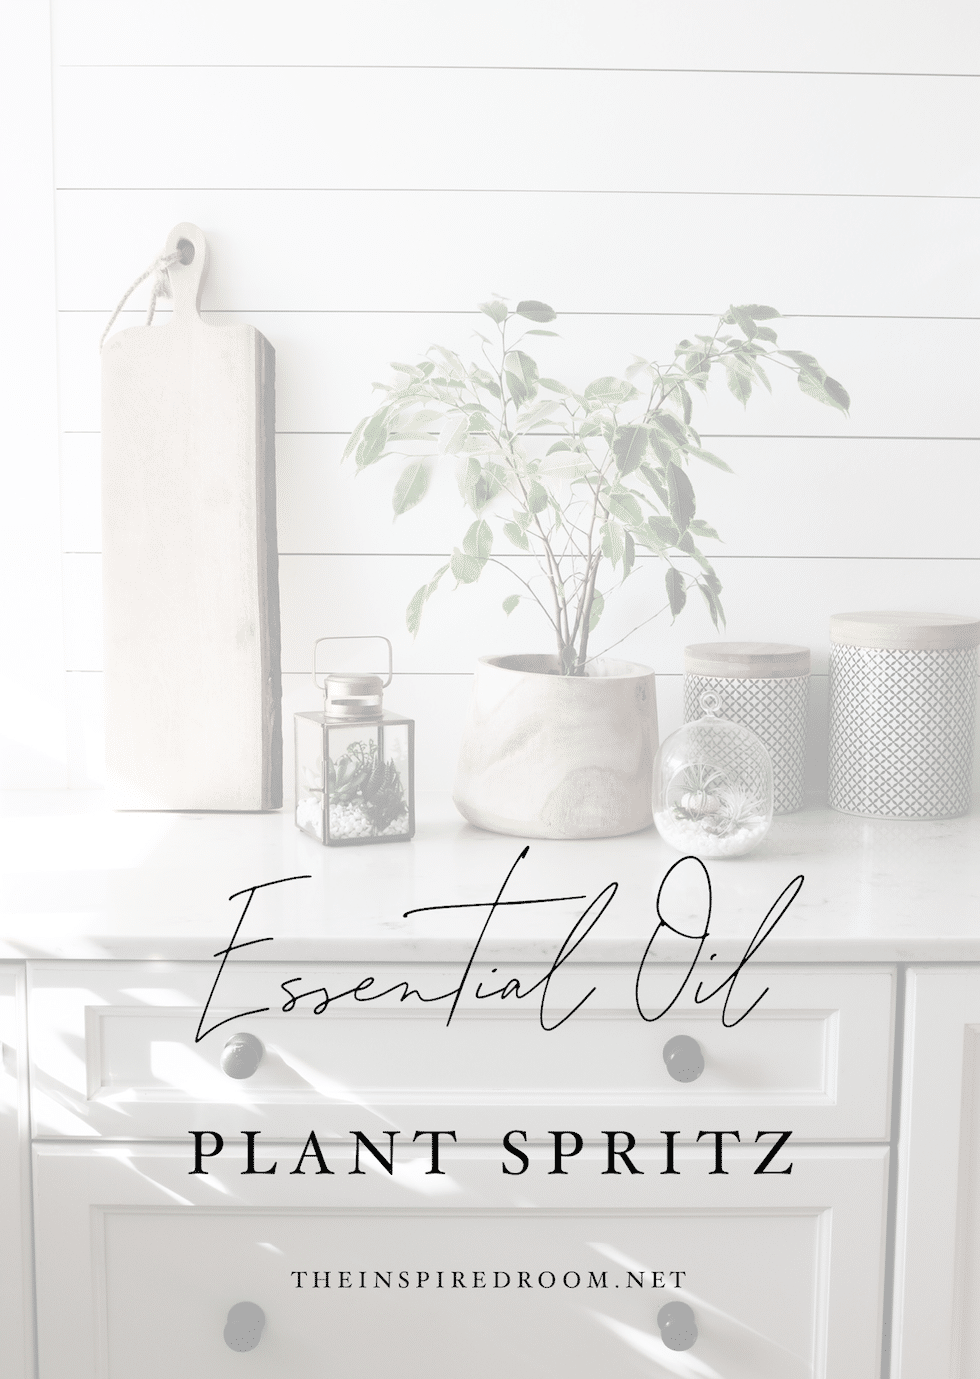 Happy Plant Spray for Your Home + Garden